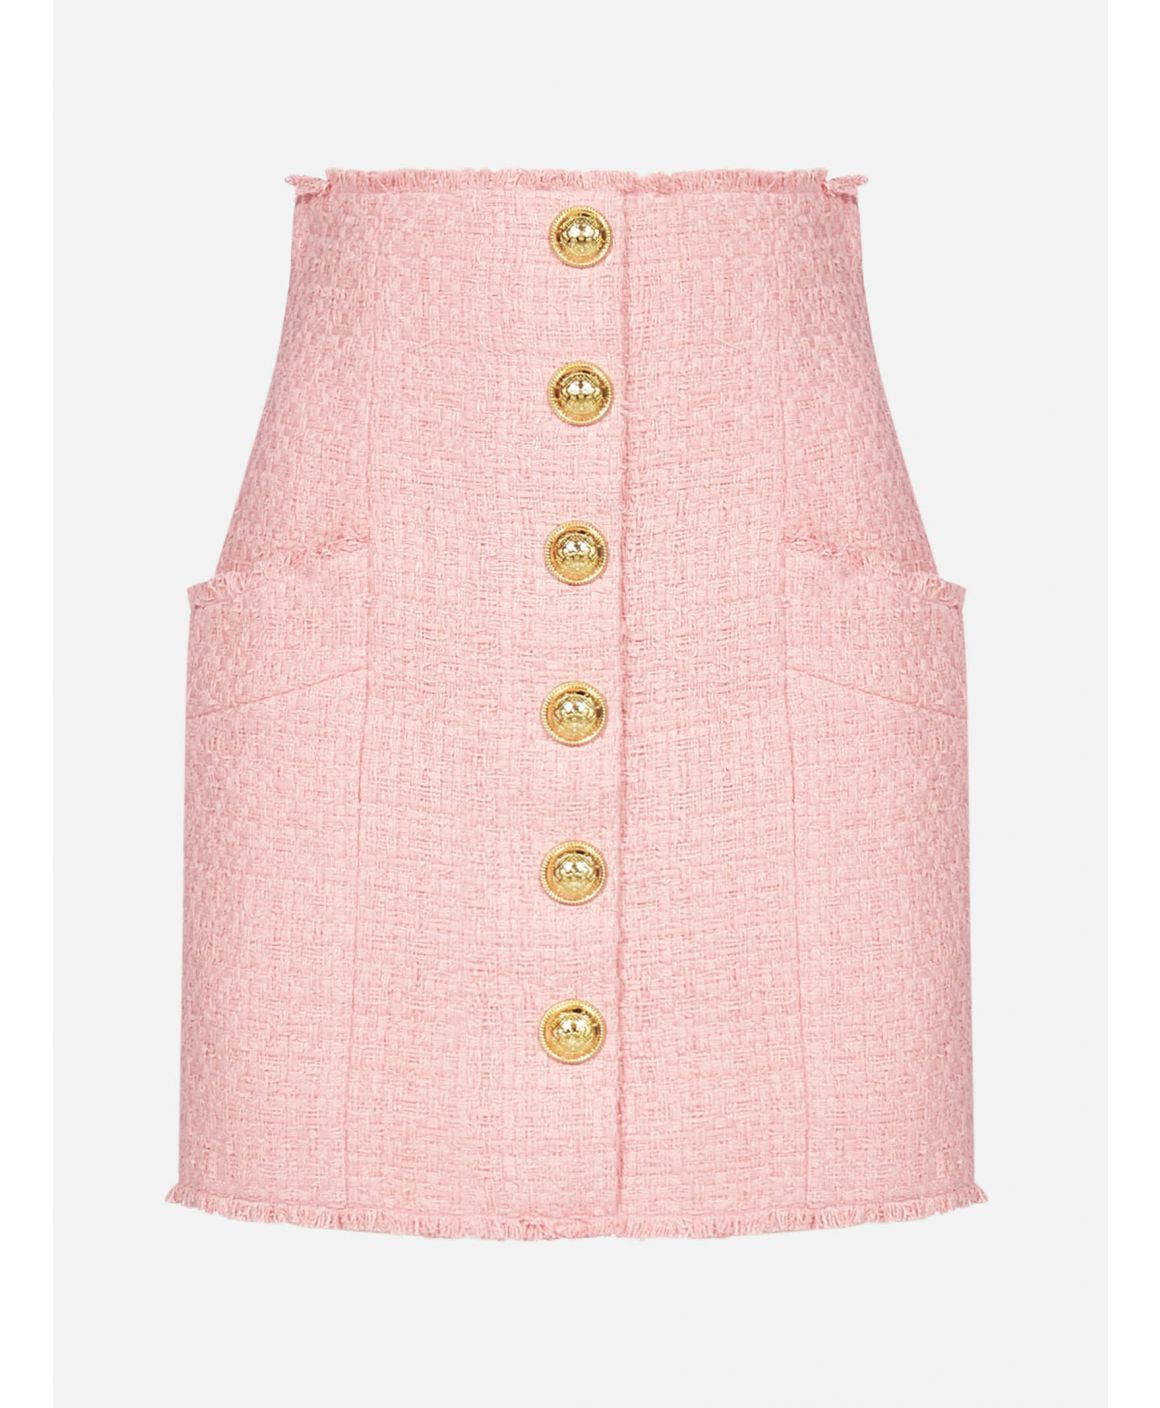 Buttoned cotton tweed miniskirt